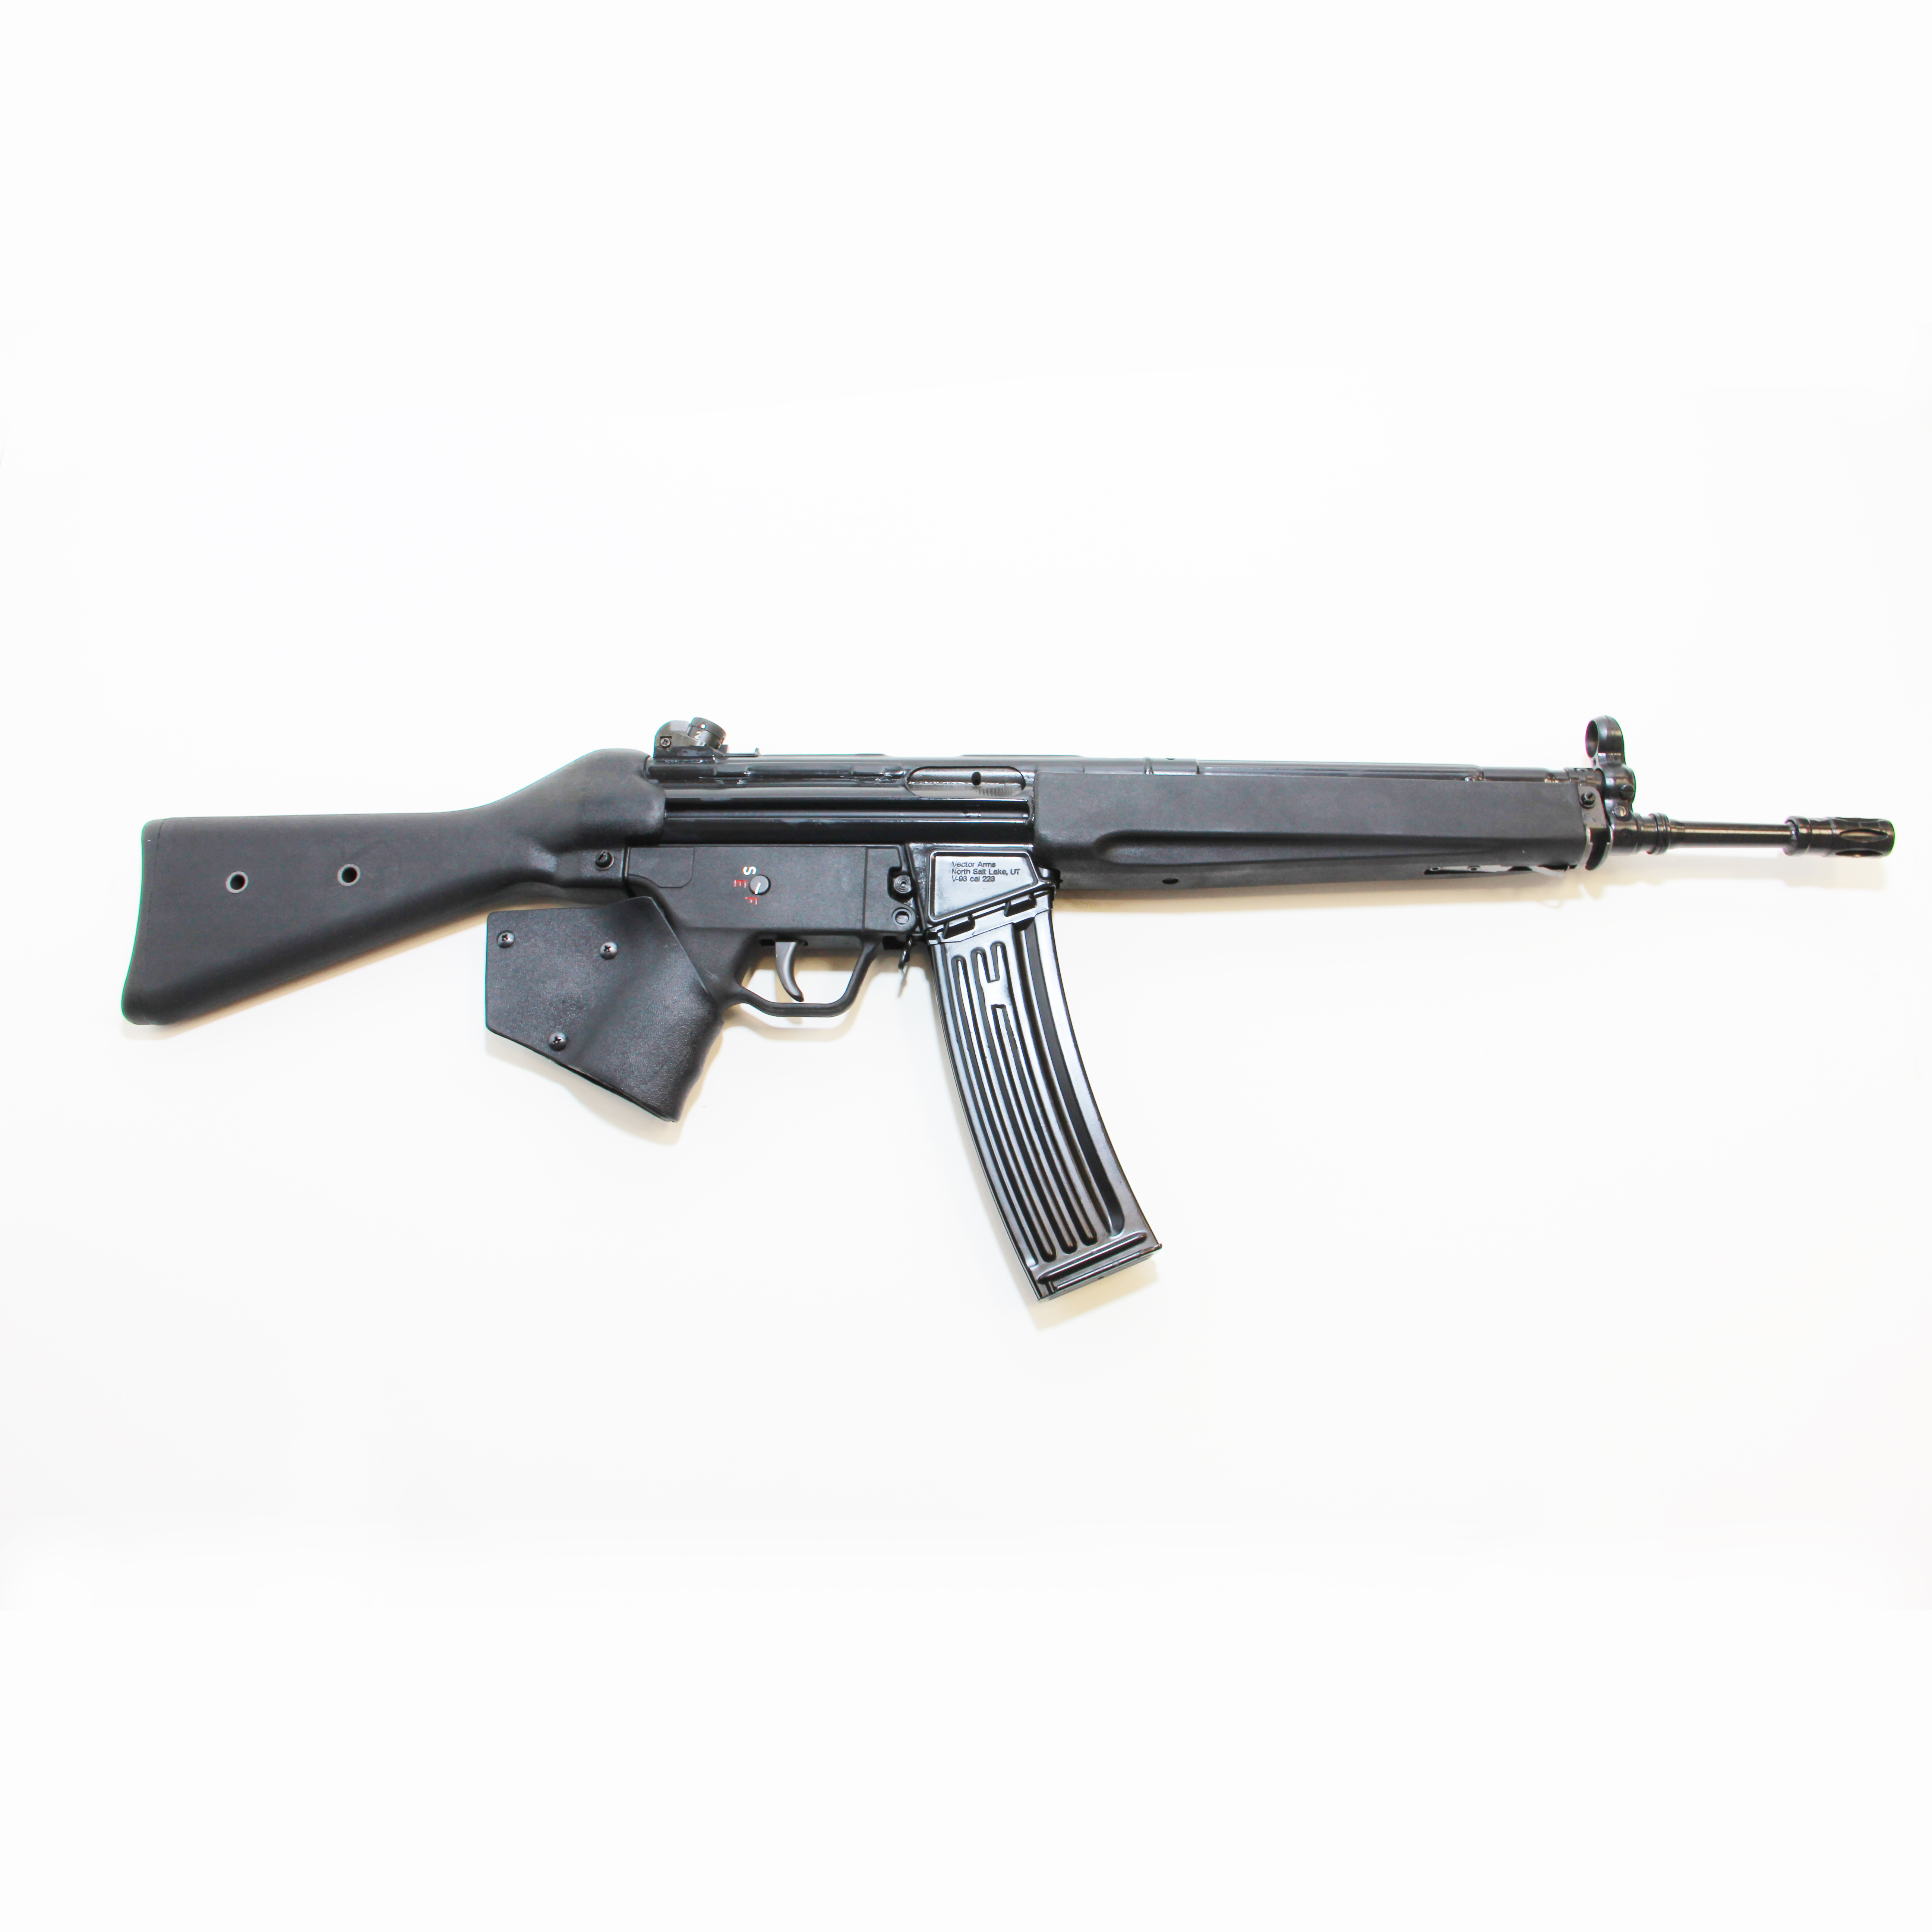 5184x5184 Vector Arms V93 Hk93 Style 556mm Nato Rifle